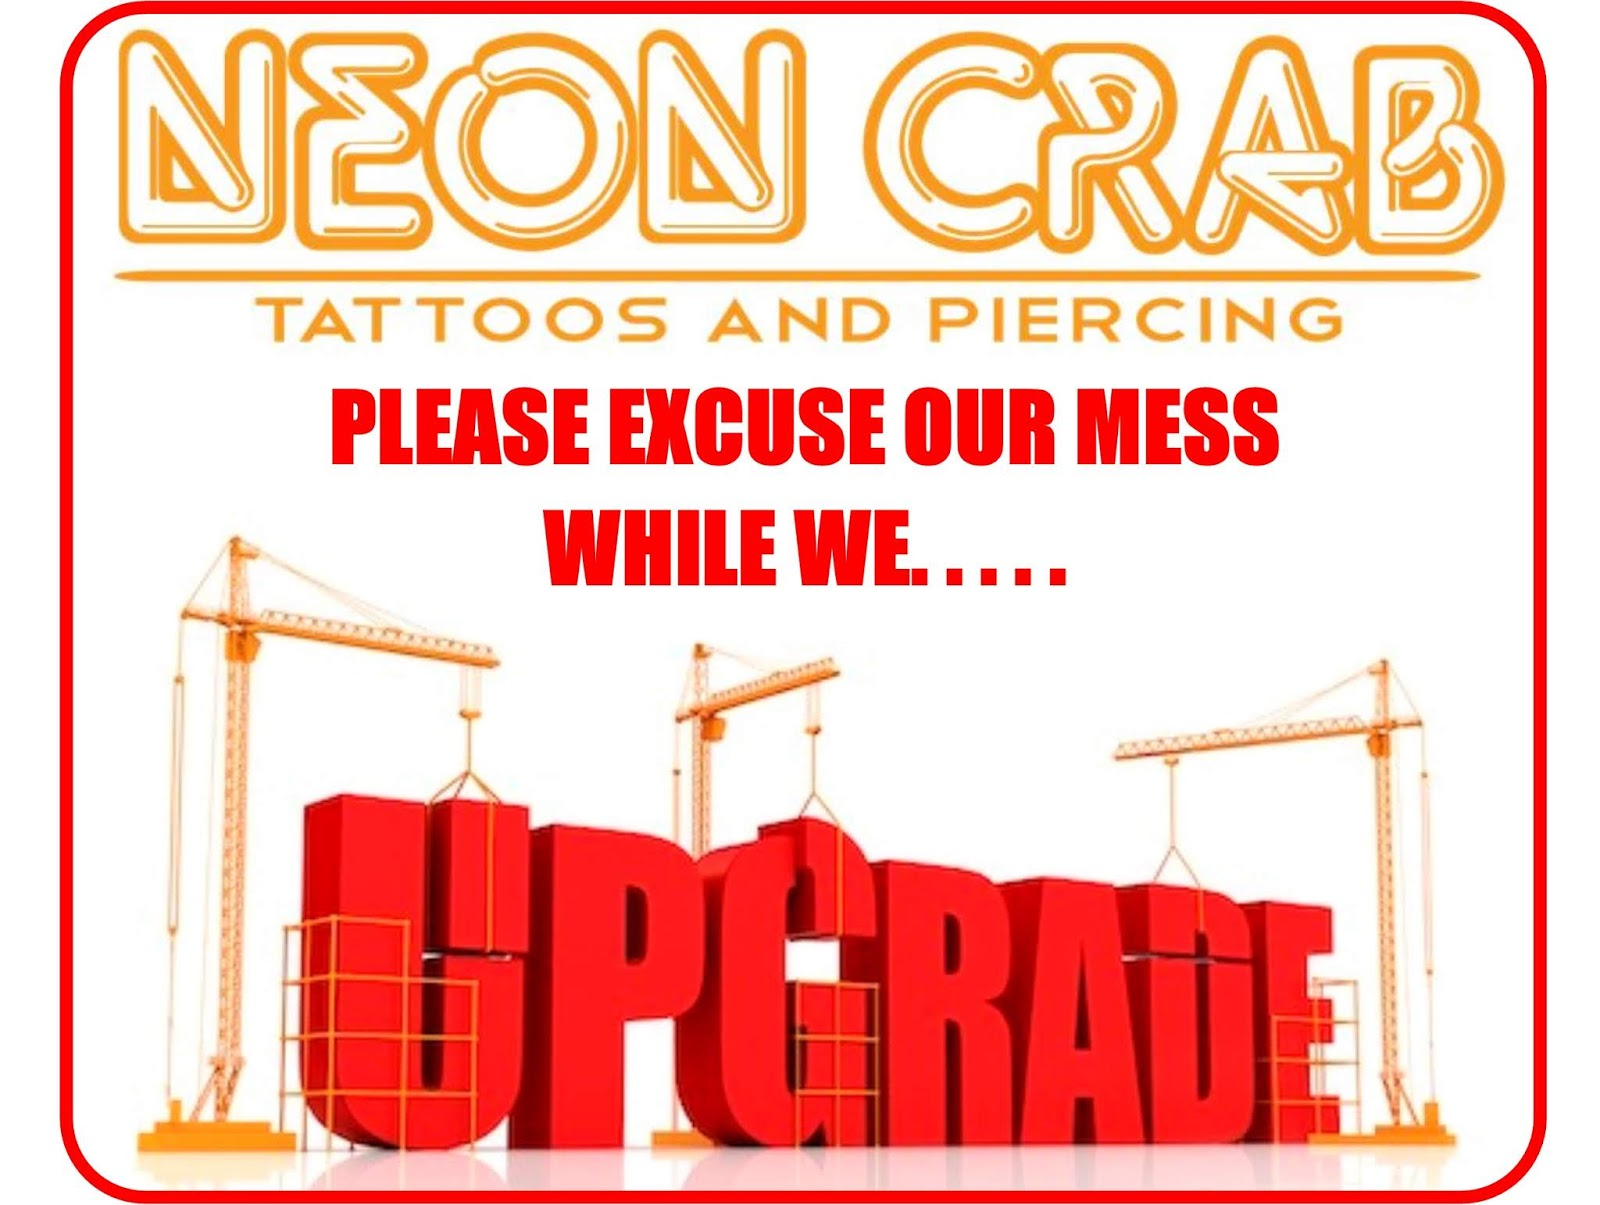 d4a63ce3fc44c Exciting changes are coming to the Neon Crab in Strathroy. For the next 2  weeks, we are still open, but please excuse the chaos inside, as we upgrade  our ...